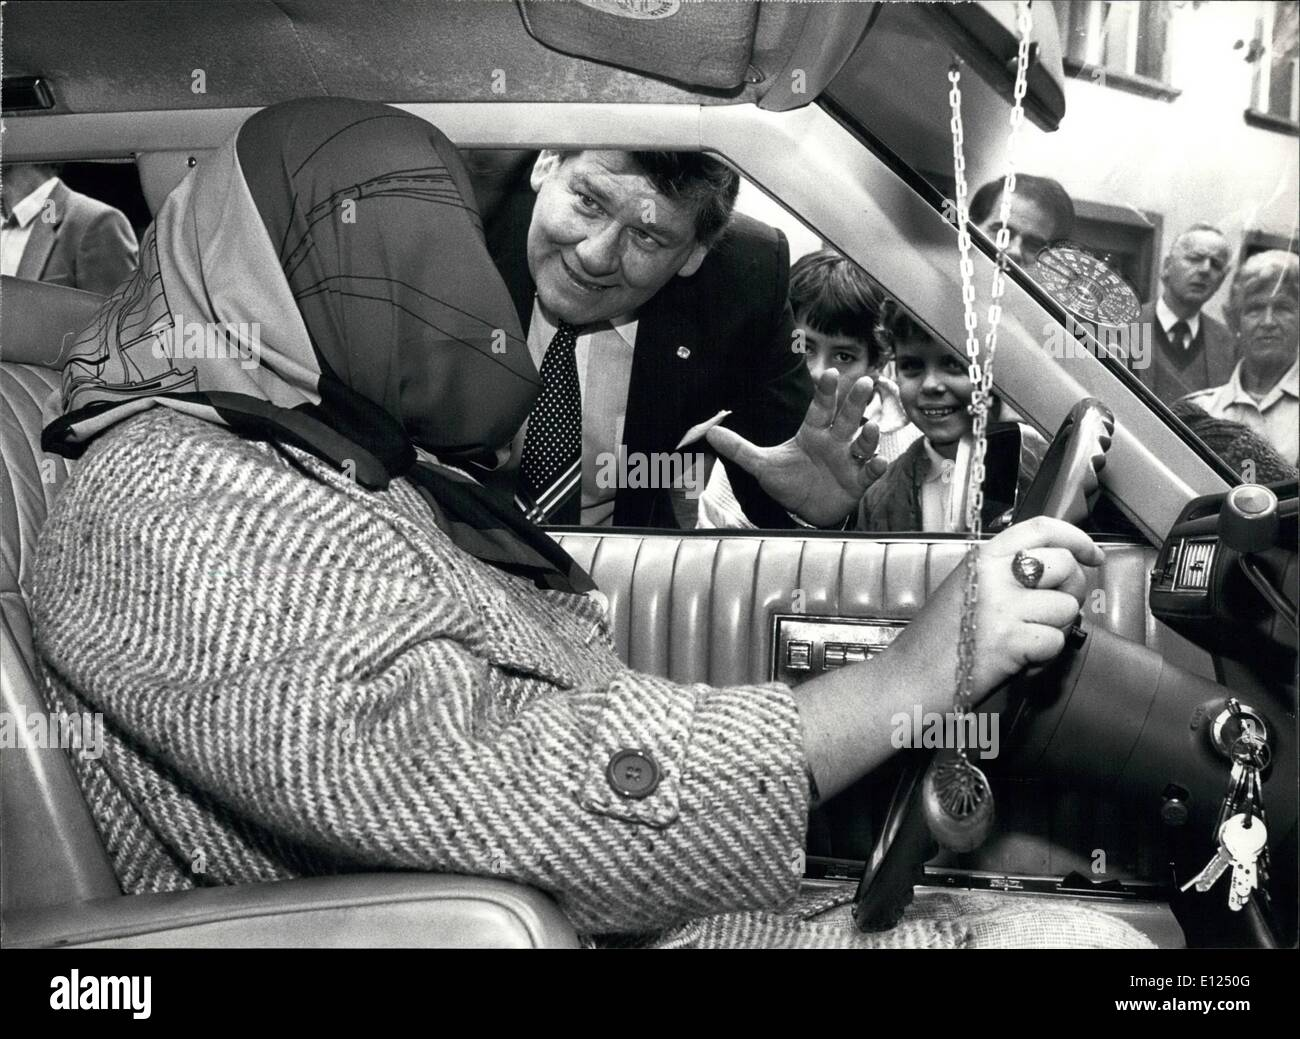 Oct. 10, 1986 - She drove the car blindfolded: The artiste Athene Radar is seen in her car with blondfolded eyes starting to a car trip of one km without seeing anything. She drove the car from the Market place to the Rumelinsplace in Basel and back followed by her father in another car who helped her with magic forces. - Stock Image